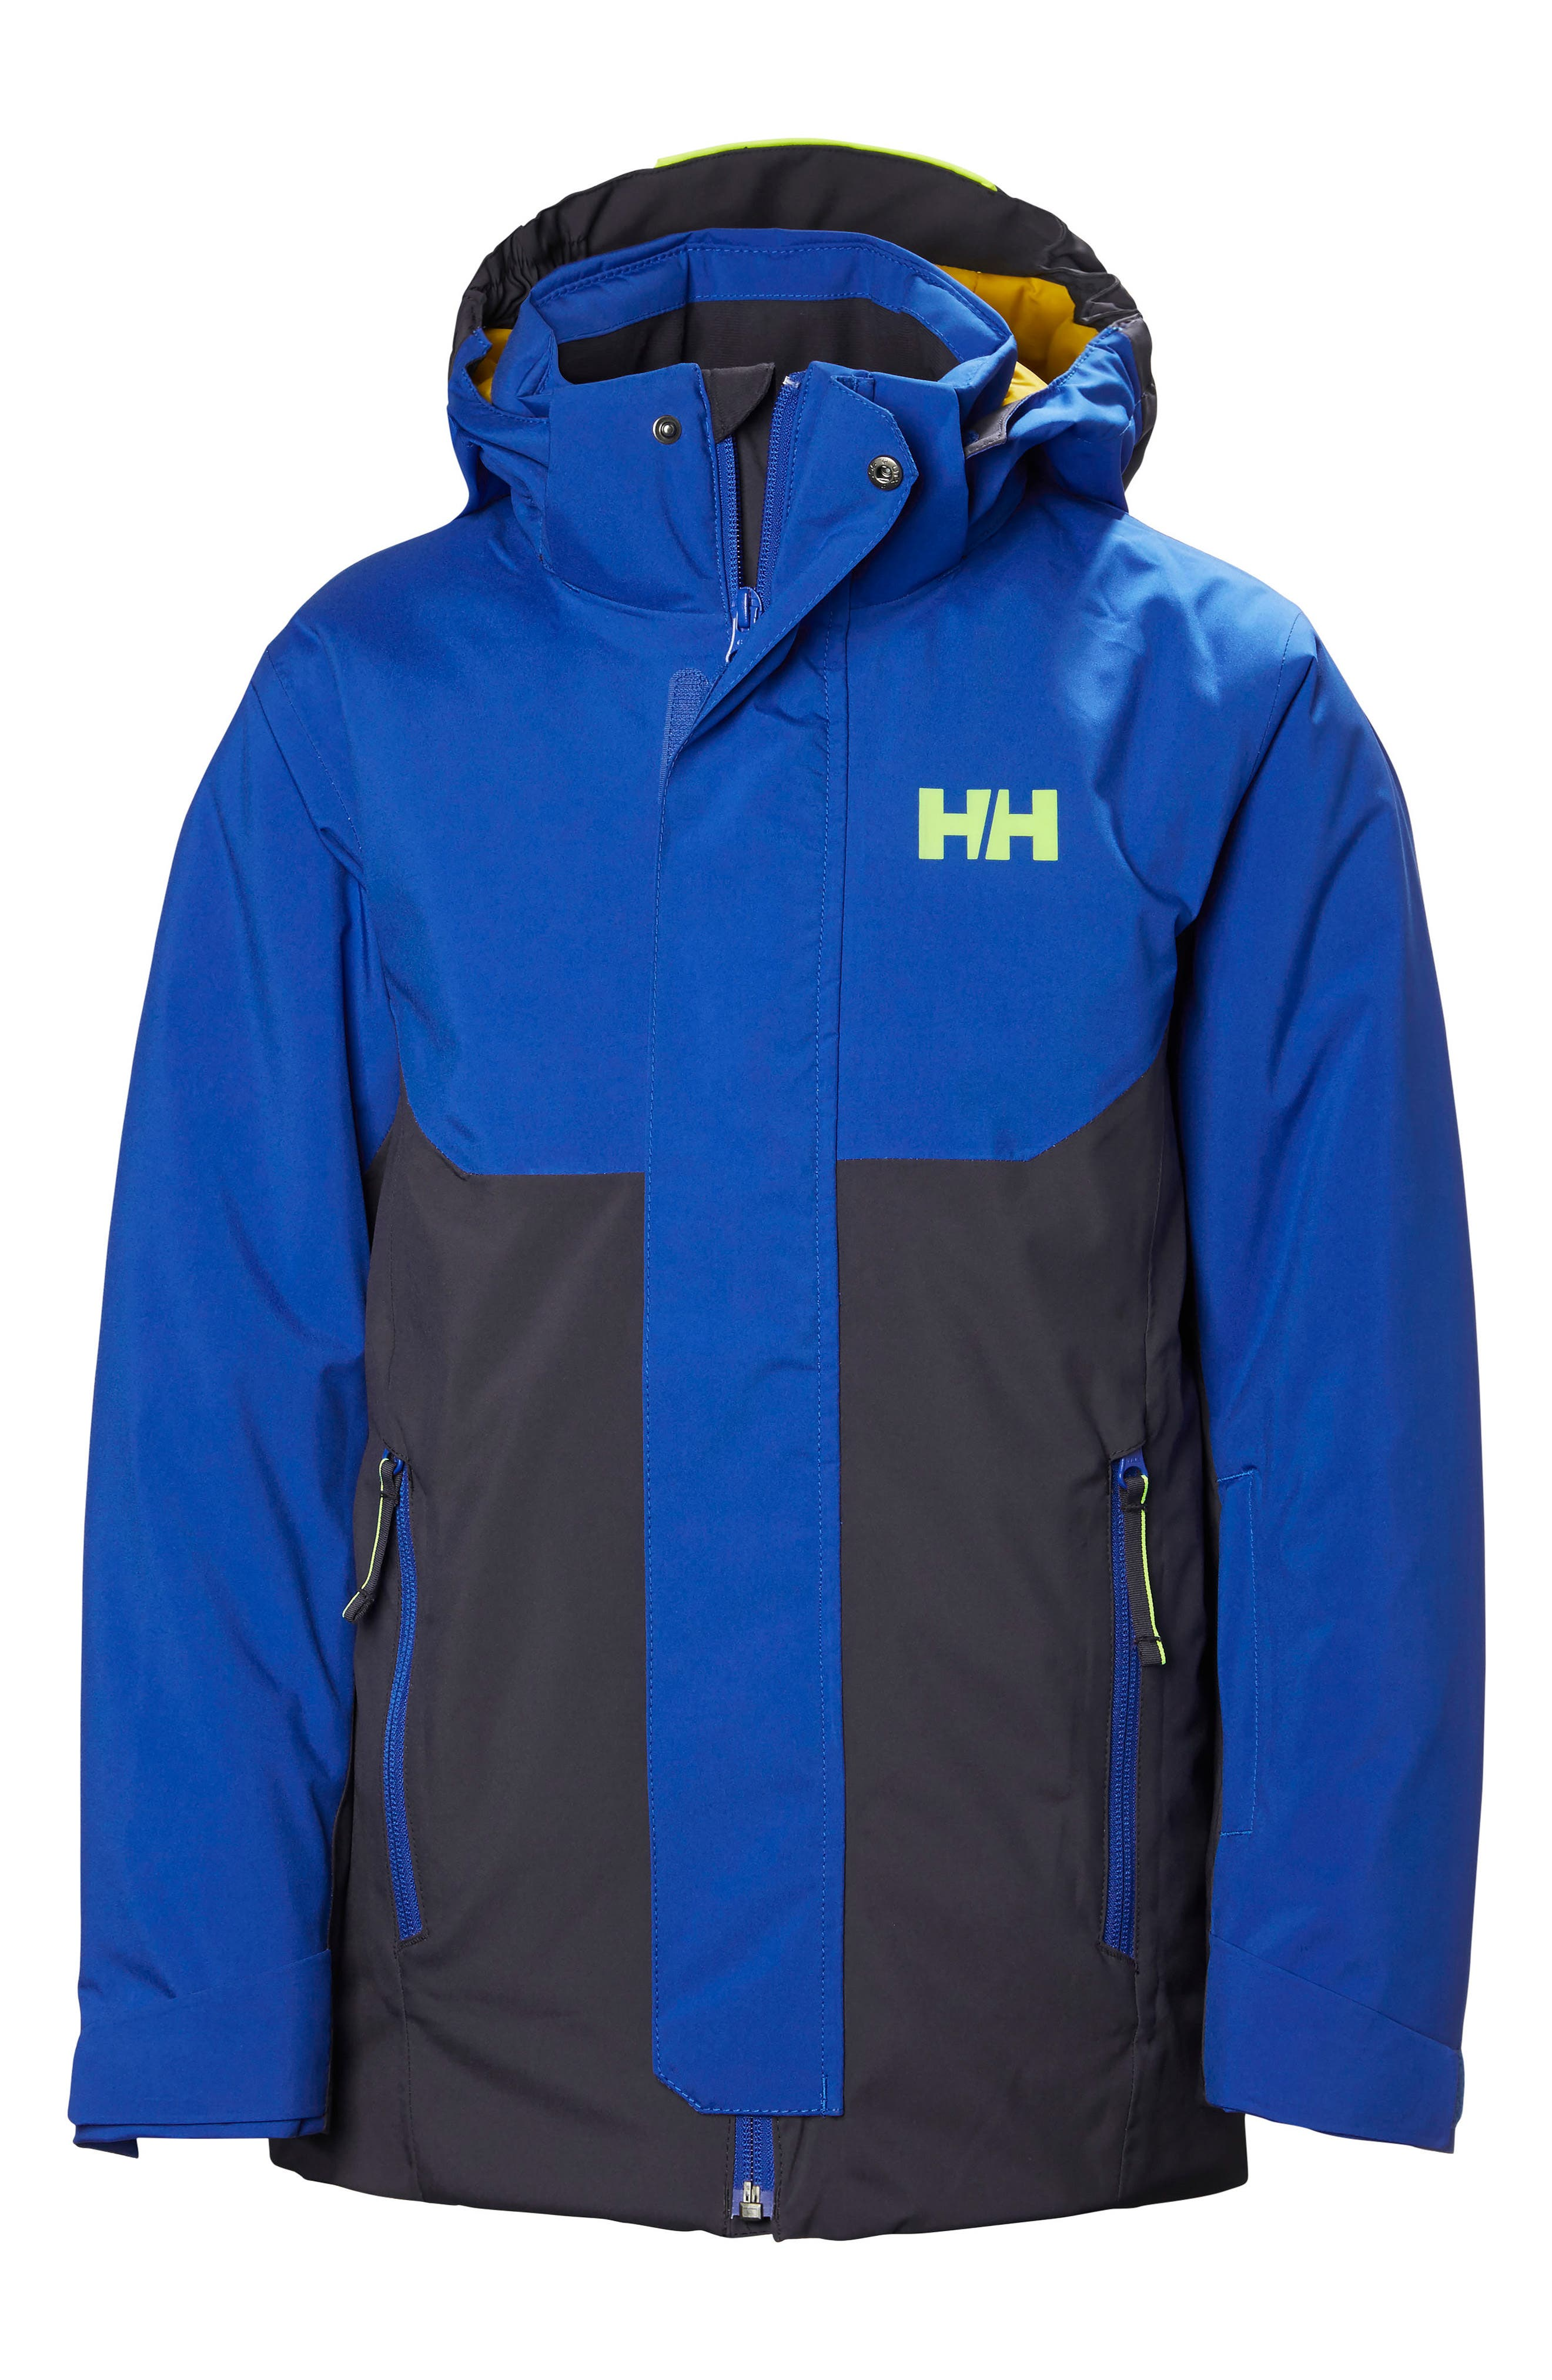 Univers Waterproof Insulated Hooded Jacket,                         Main,                         color, Graphite Blue